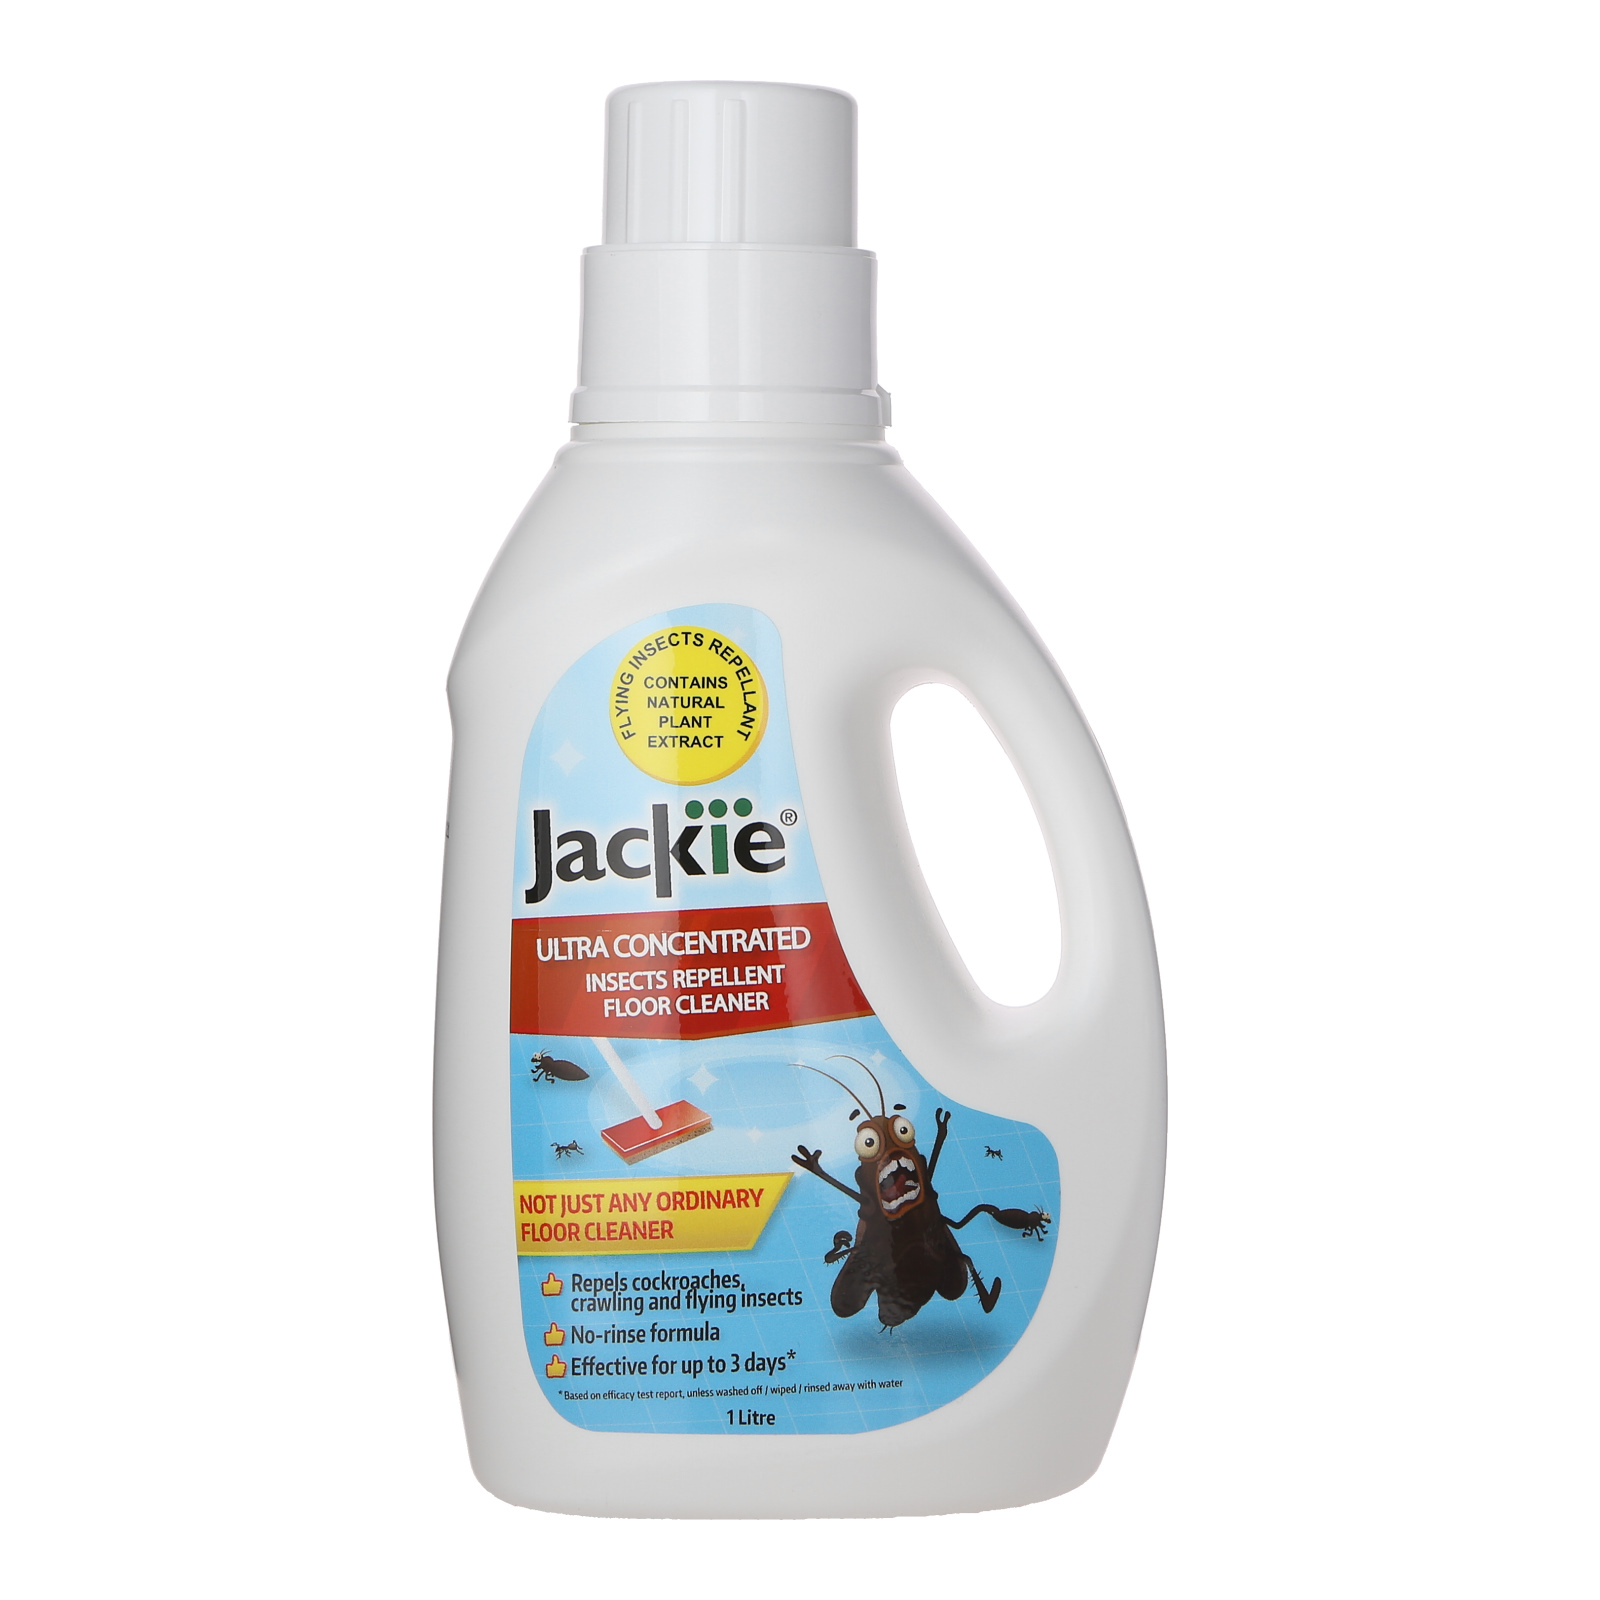 liquid tile floor cleaner ultra concentrated insect repellent household cleaning floor cleaner with insect repelling function 1l buy insect